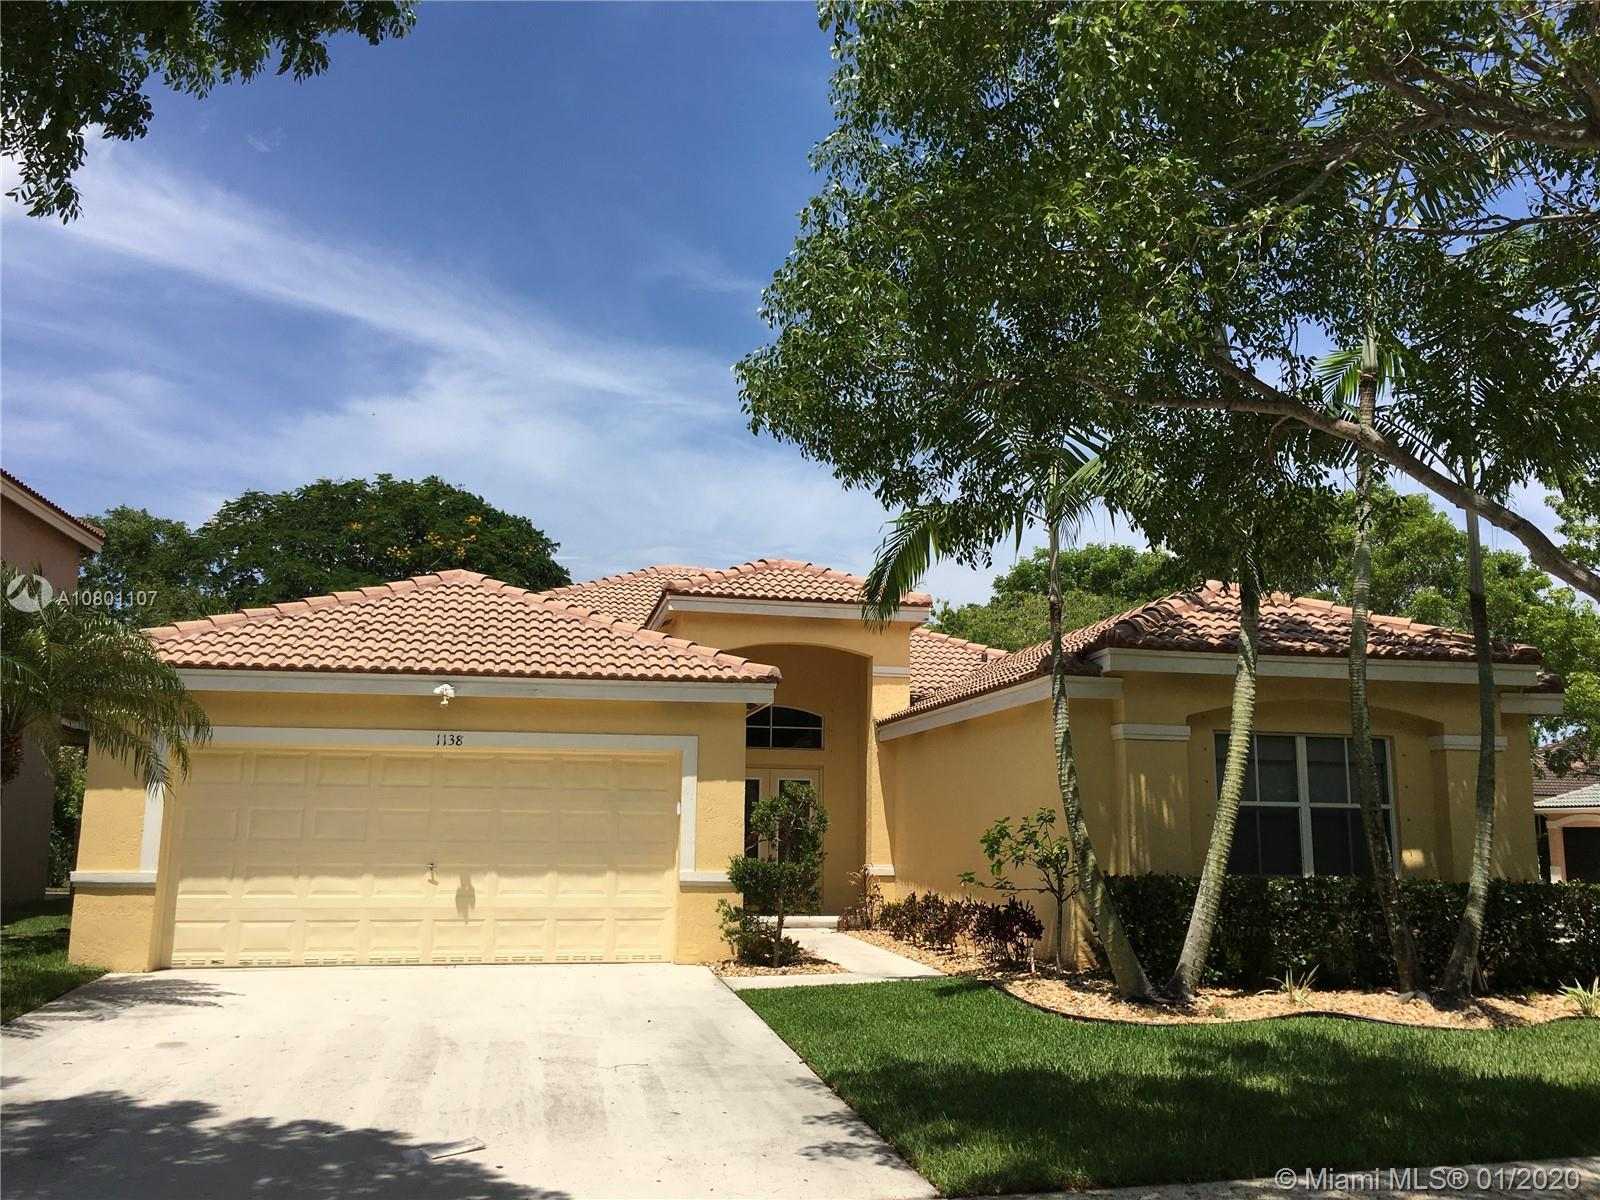 Gorgeous one-story home on the corner in a gated community of Savanna in the beautiful City of Weston. New on the market. 4 bedroom + a Large Den/Office, 2 1/2 Bathrooms. Beautiful kitchen. Freshly painted. Community pool and a small pool with waterfall for children, tennis courts, basketball court, soccer ball field, and playground. Best South Florida location! A+ rated schools.